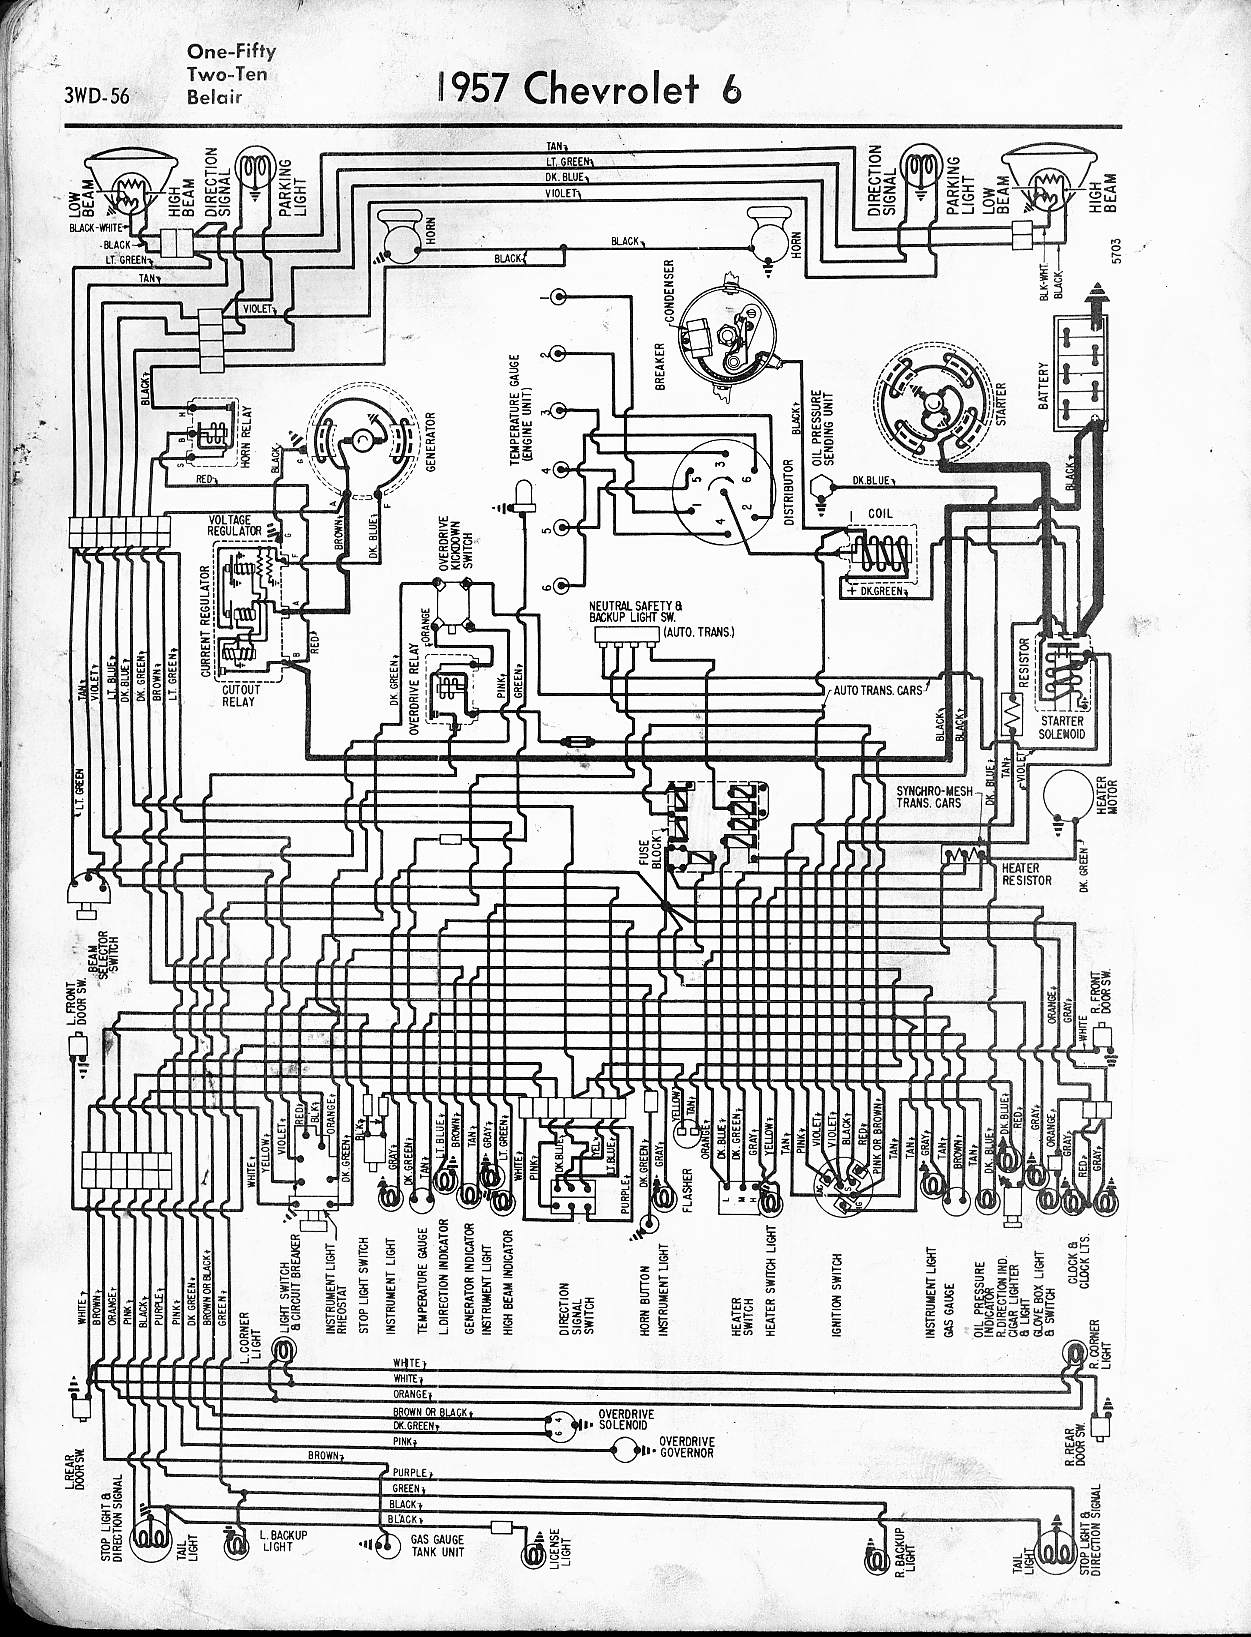 MWireChev57_3WD 056 57 65 chevy wiring diagrams 1957 chevy wiring harness at bayanpartner.co